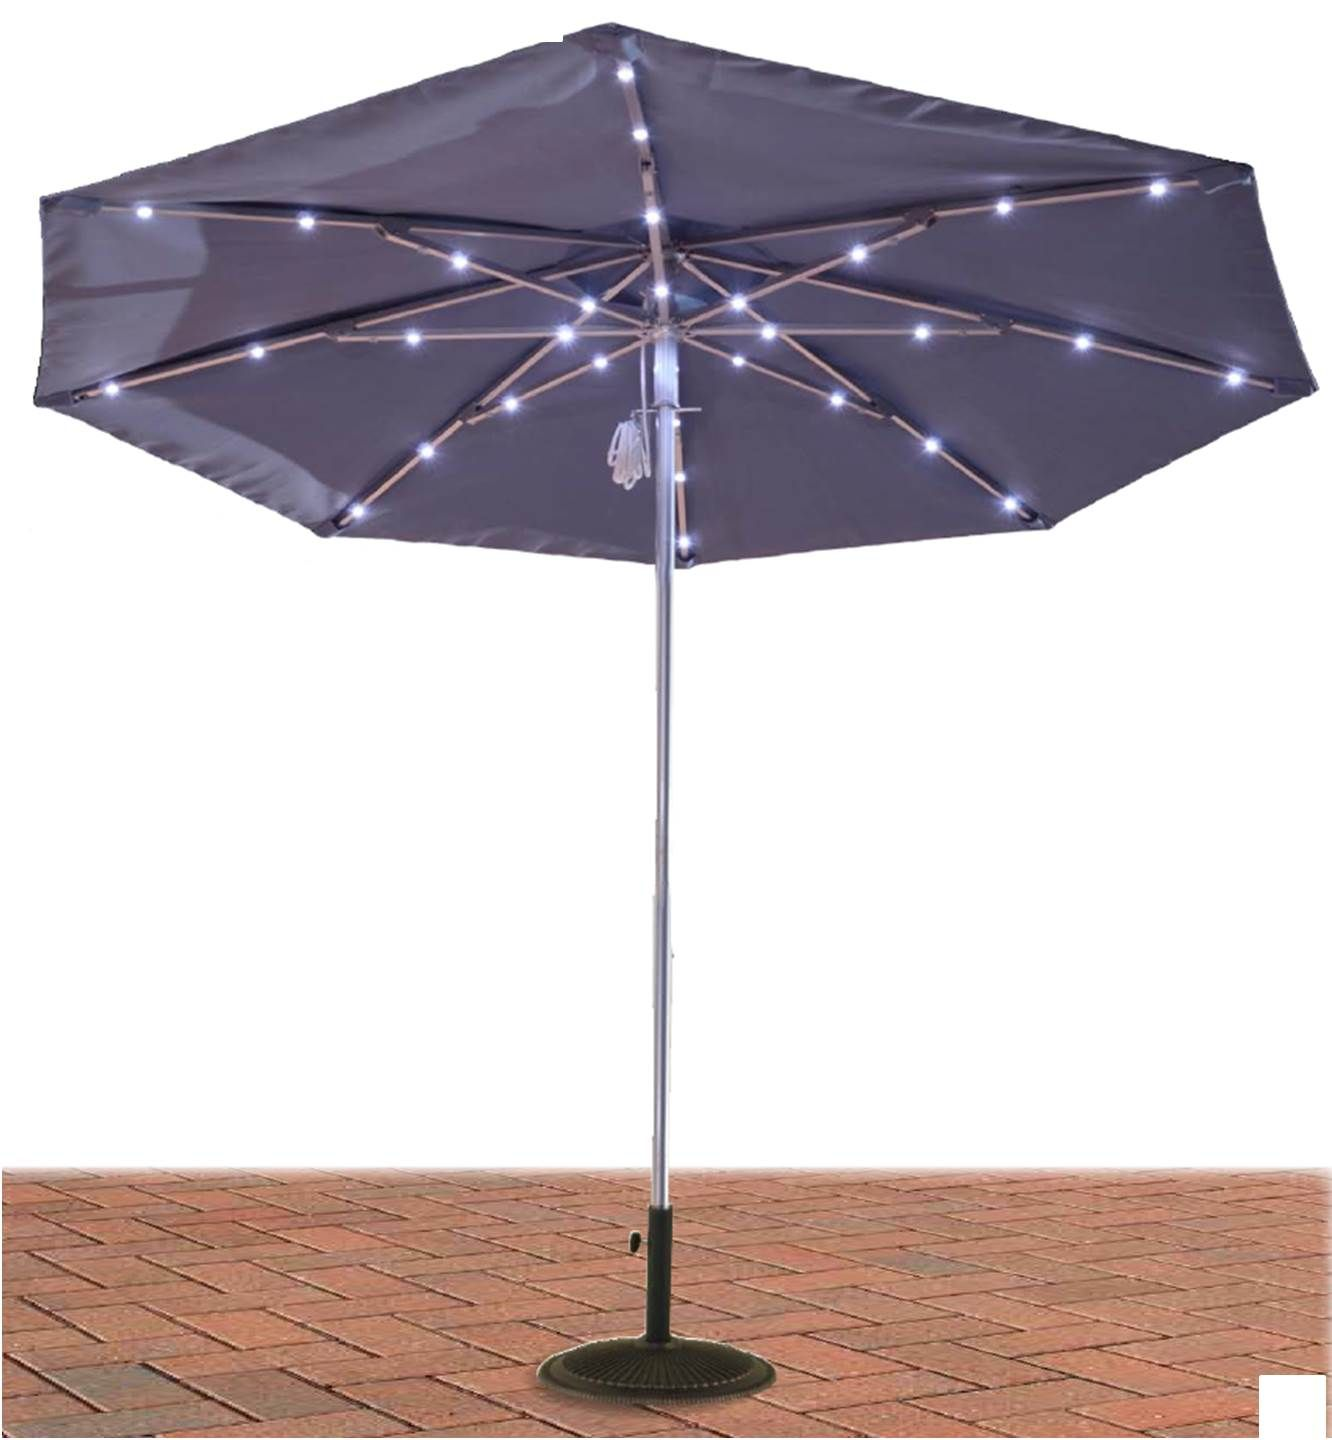 How To Use Umbrella Lights Magnificent Sunbrella Solar Patio Umbrella With Led Lights  Patio Umbrellas Inspiration